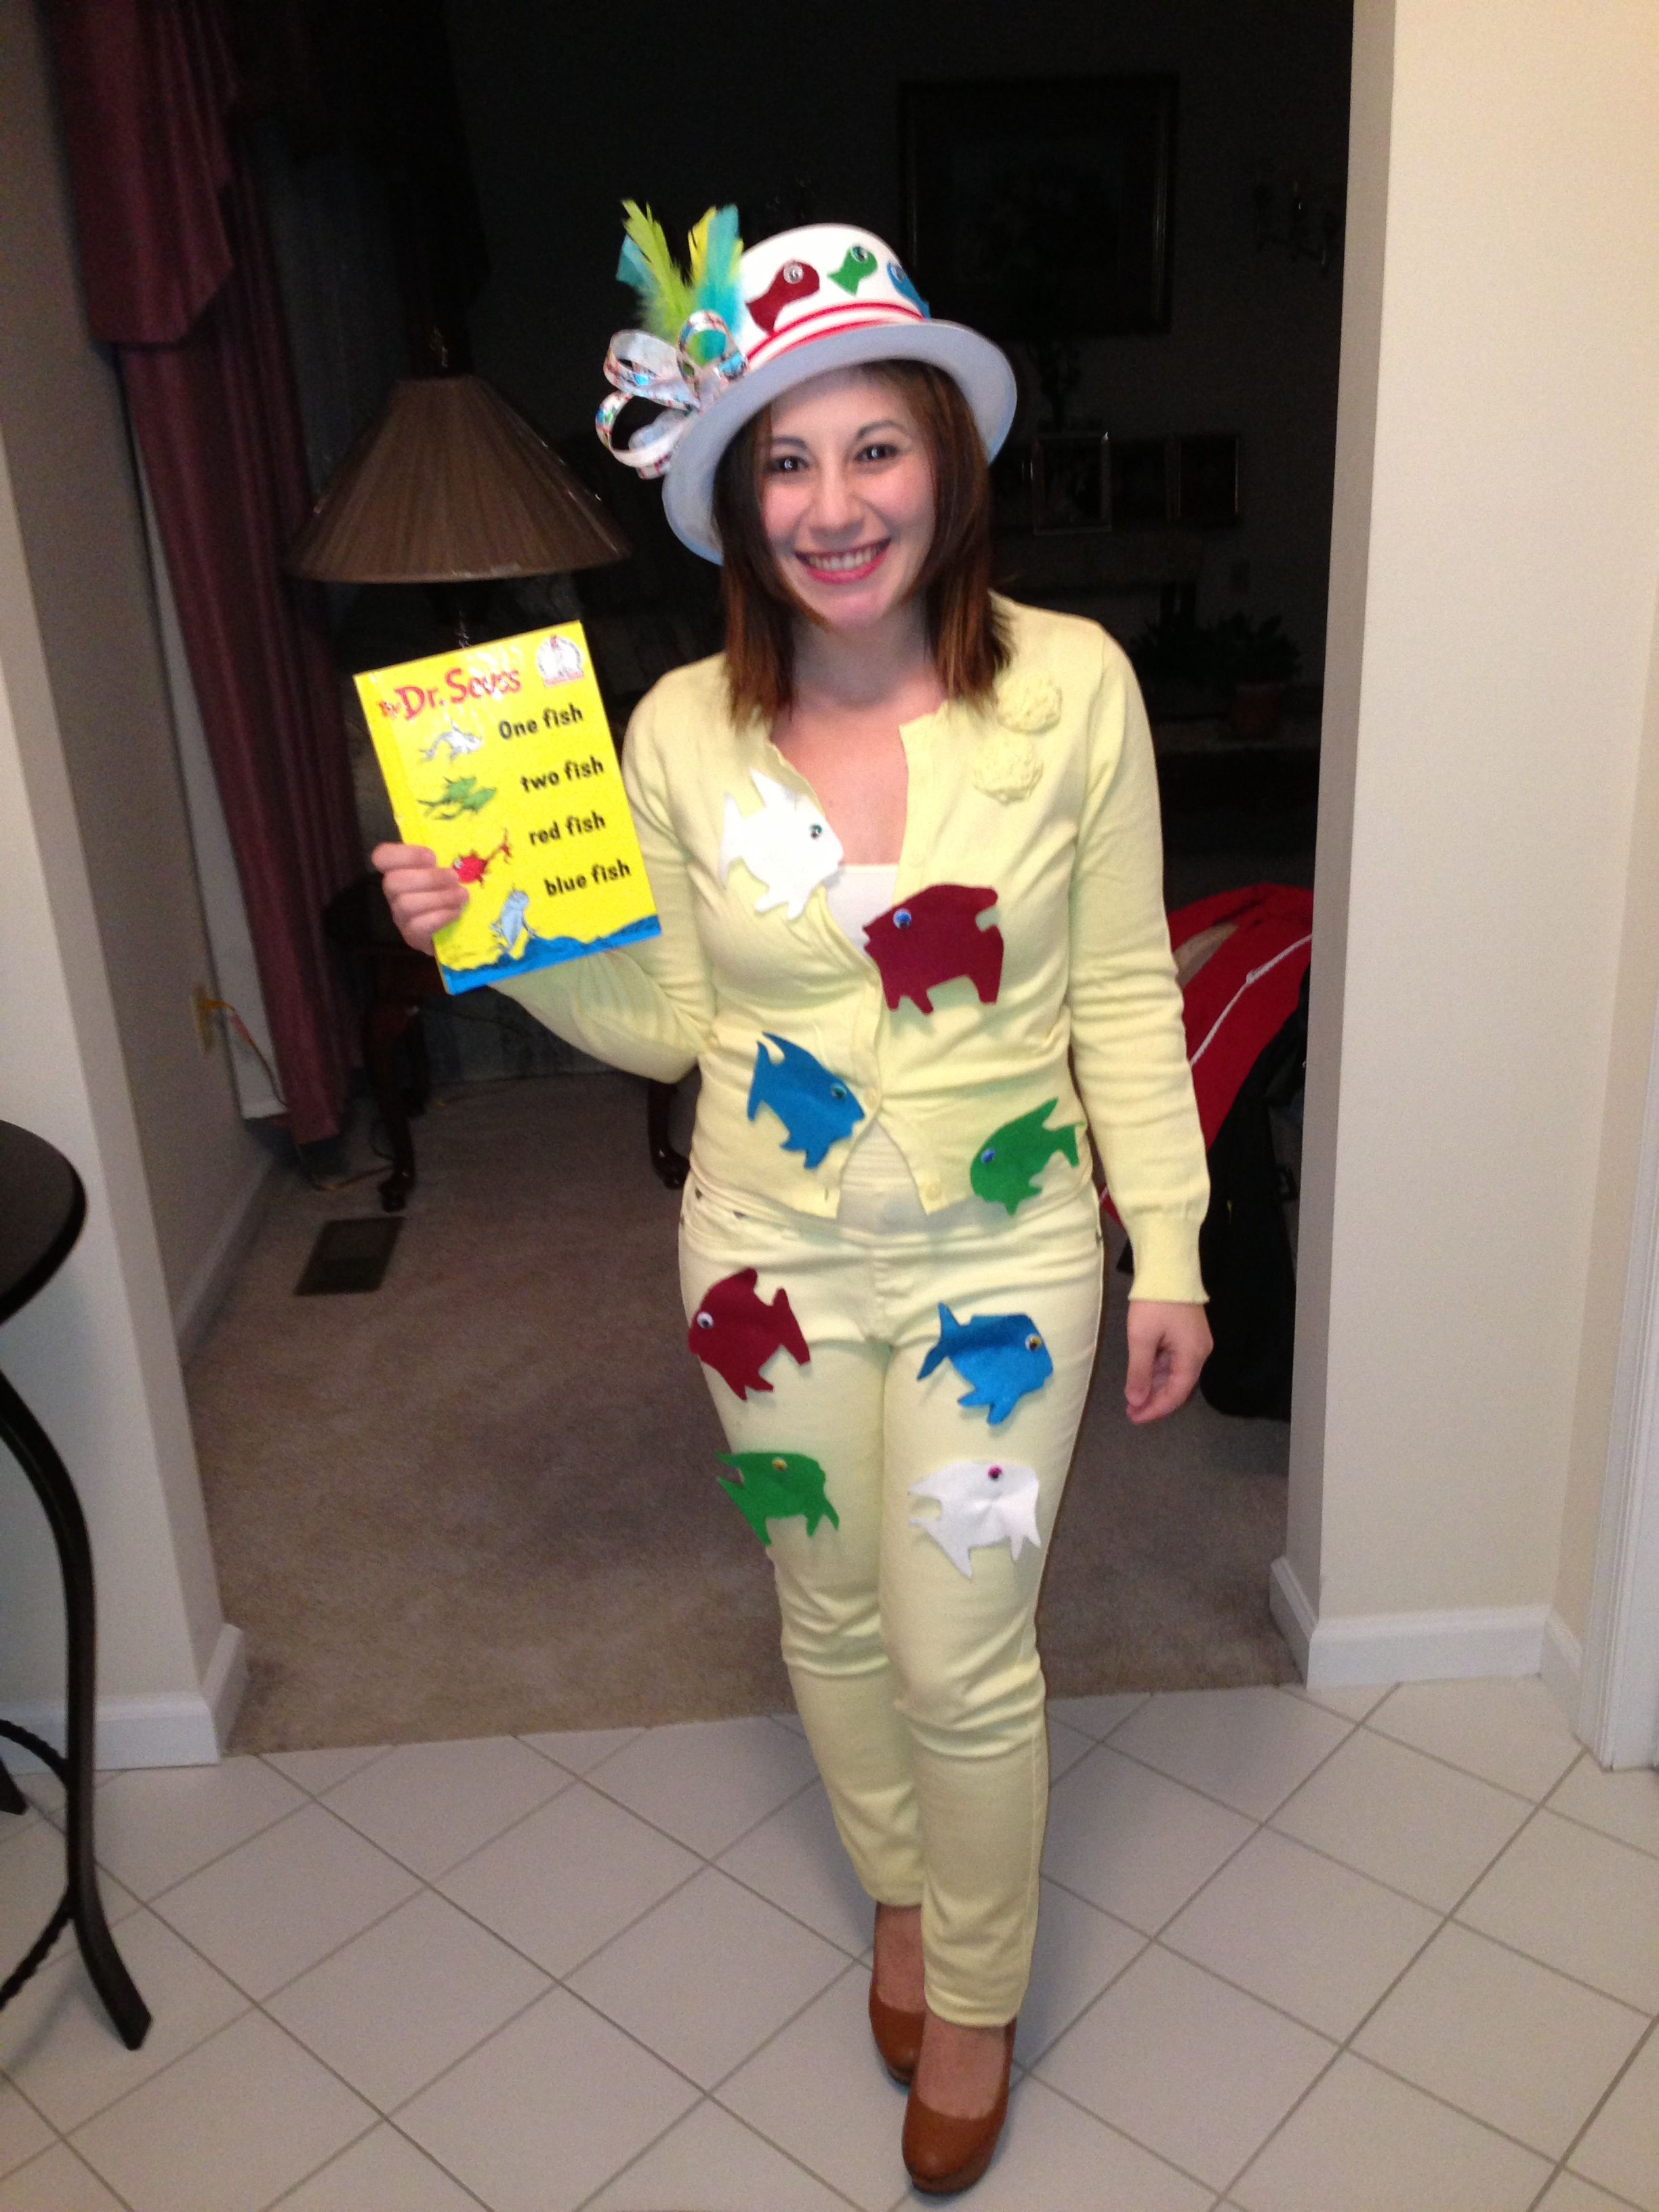 Dr Seuss one fish two fish homemade costume @Kat Ellis Steenstra HEre is the fish concept. & Dr Seuss one fish two fish homemade costume @Kat Ellis Steenstra ...